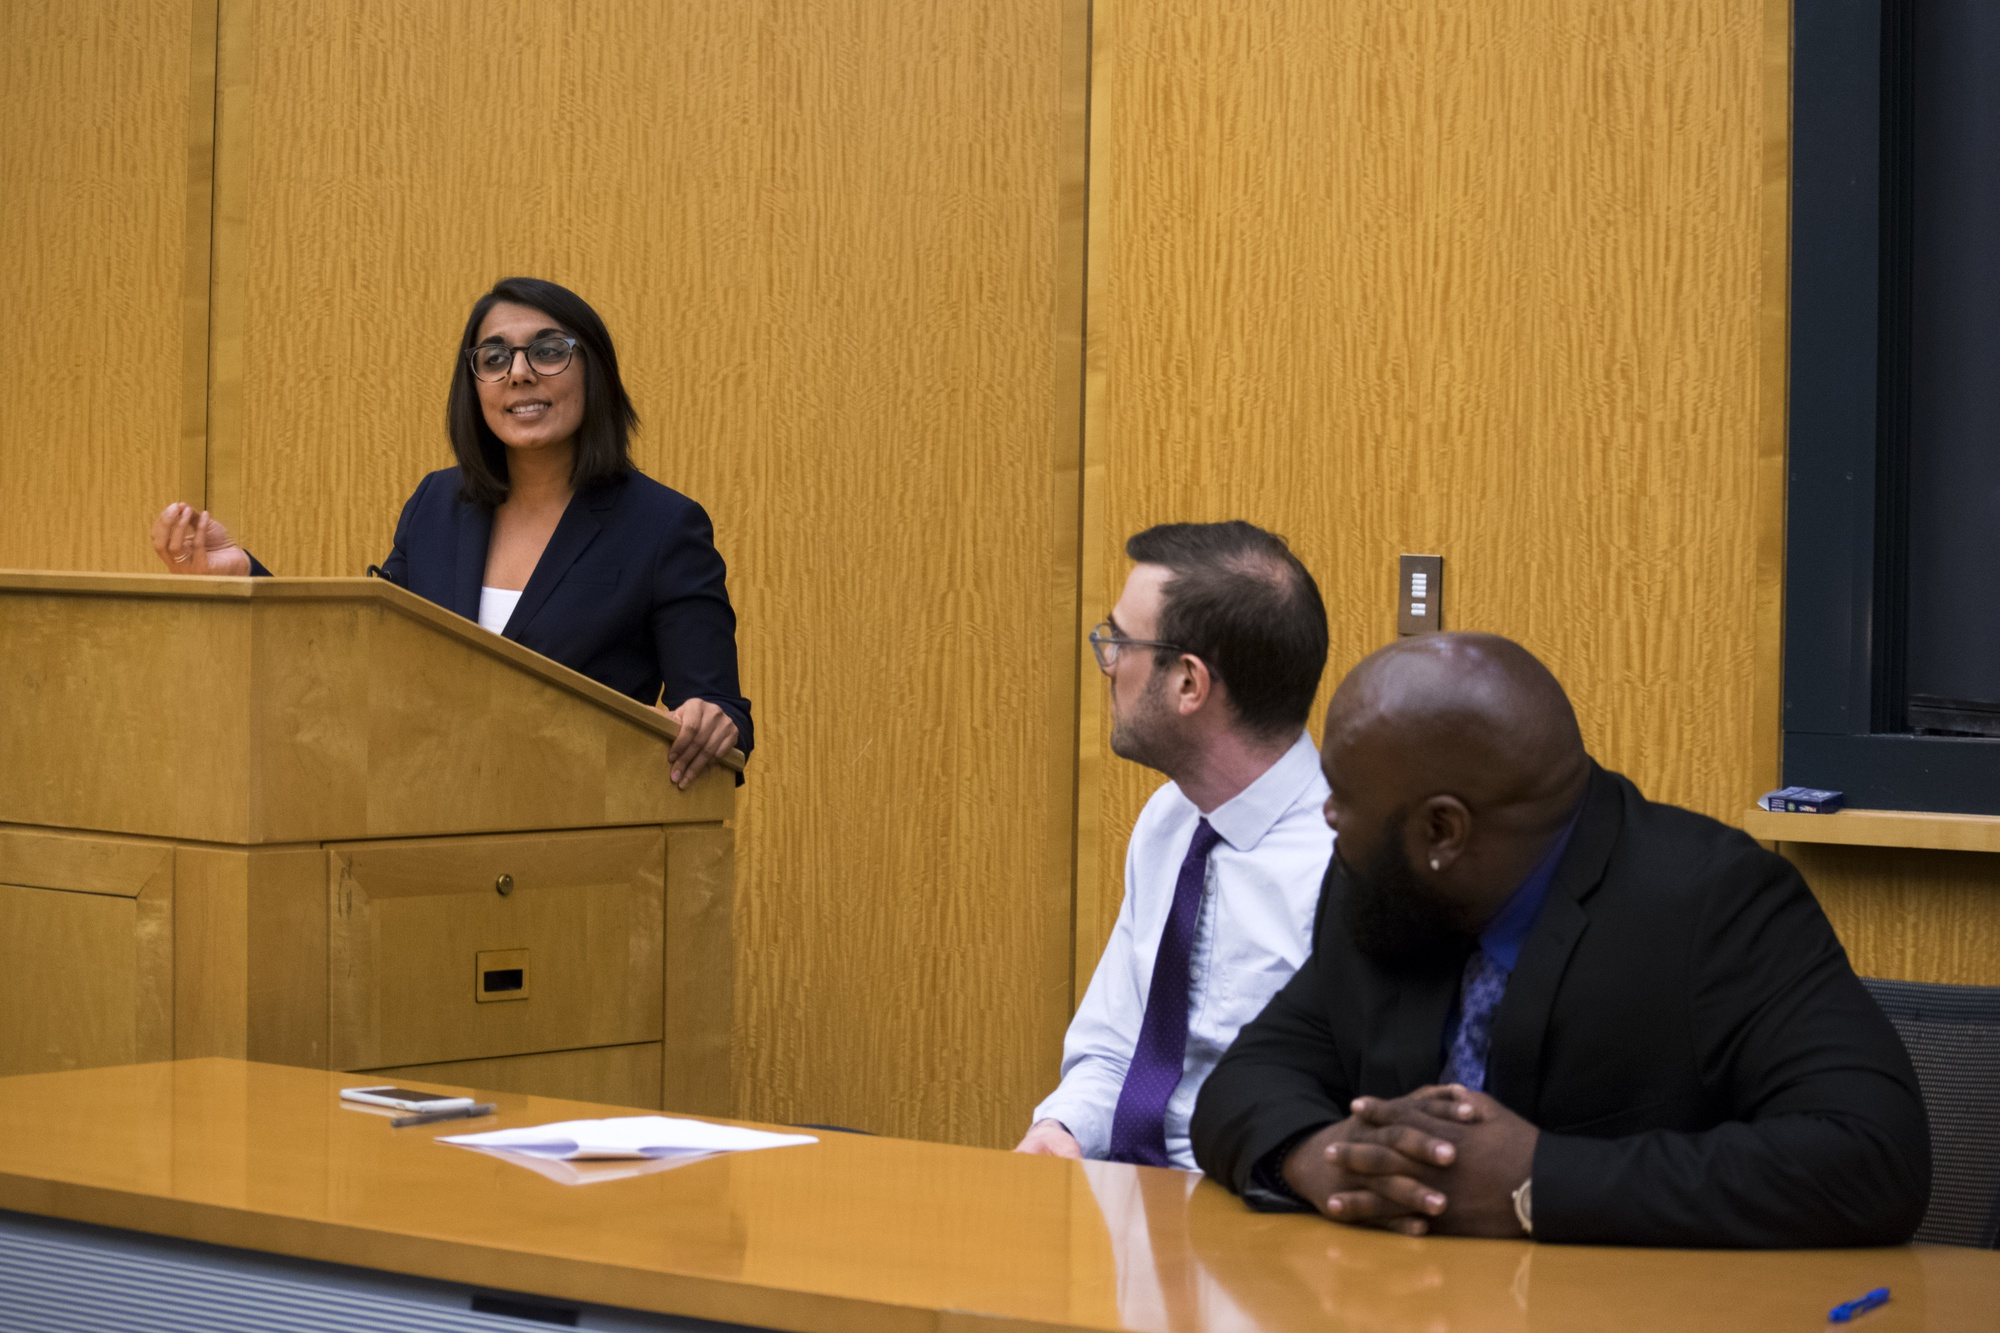 Aditi Goel, a clinical instructor at the Harvard Law School Criminal Justice Institute, spoke about combatting wrongful convictions at a panel event on Monday night.